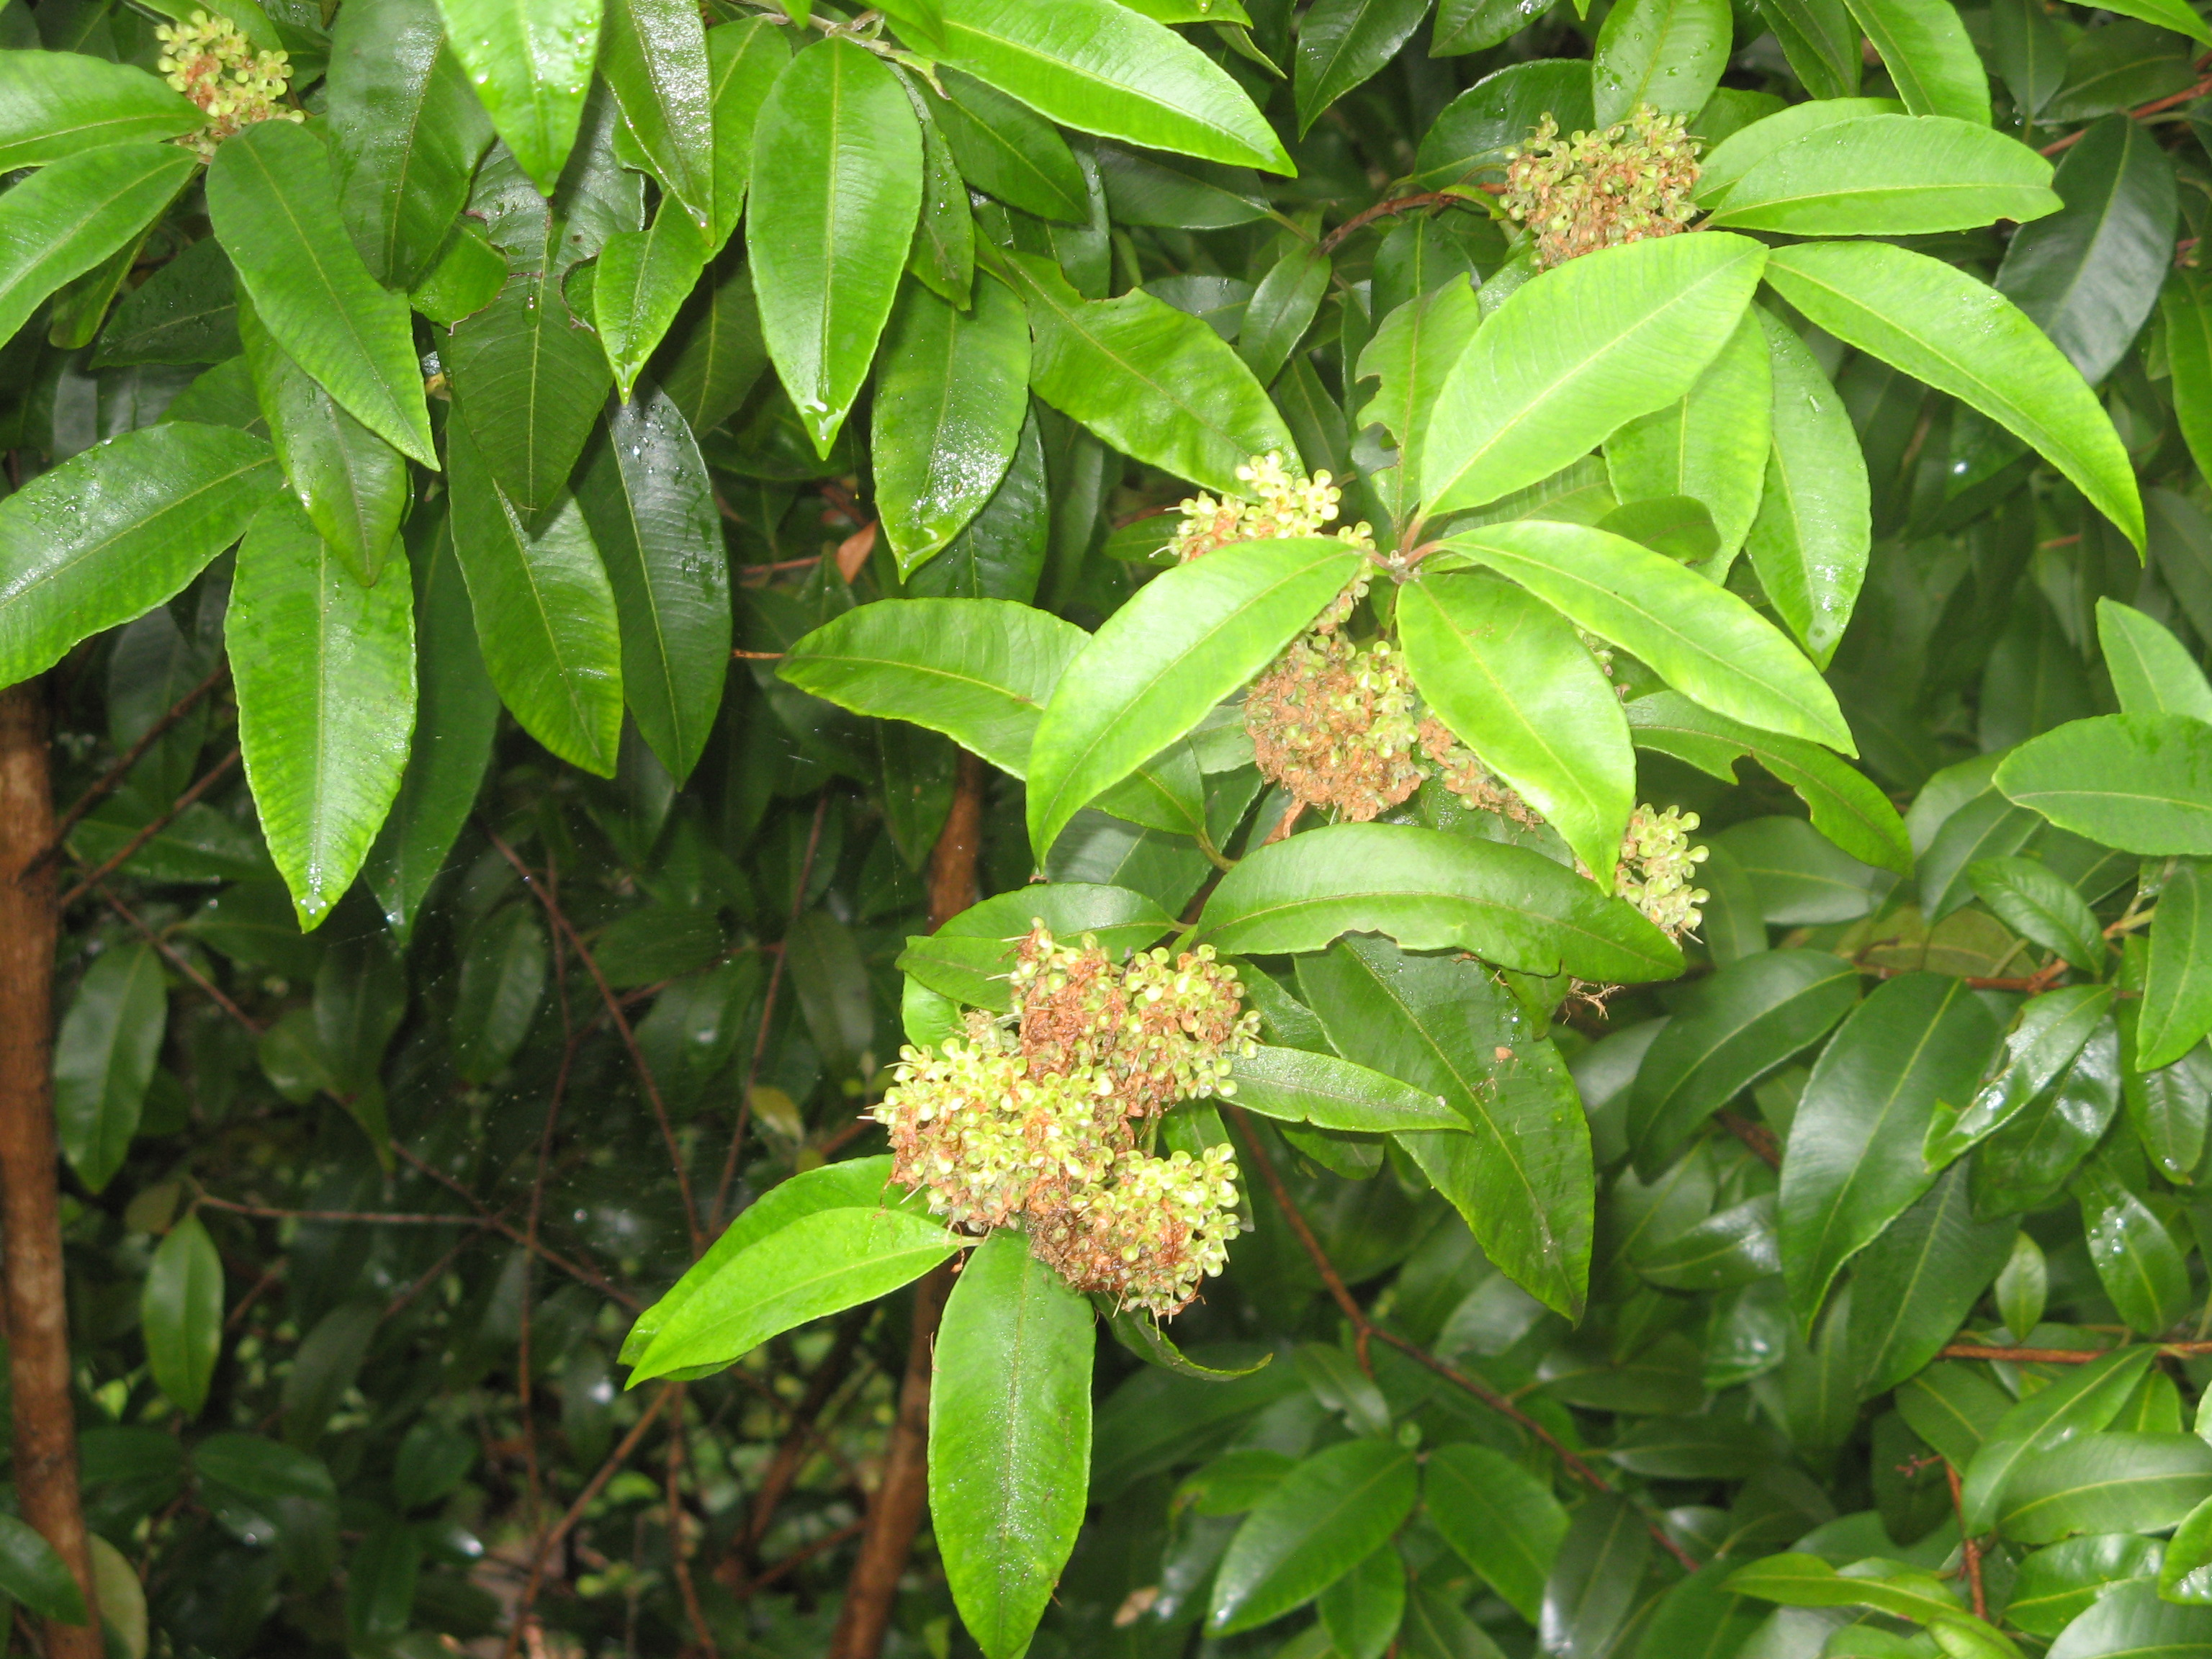 Lemon myrtle - Organic skin care for natural beauty